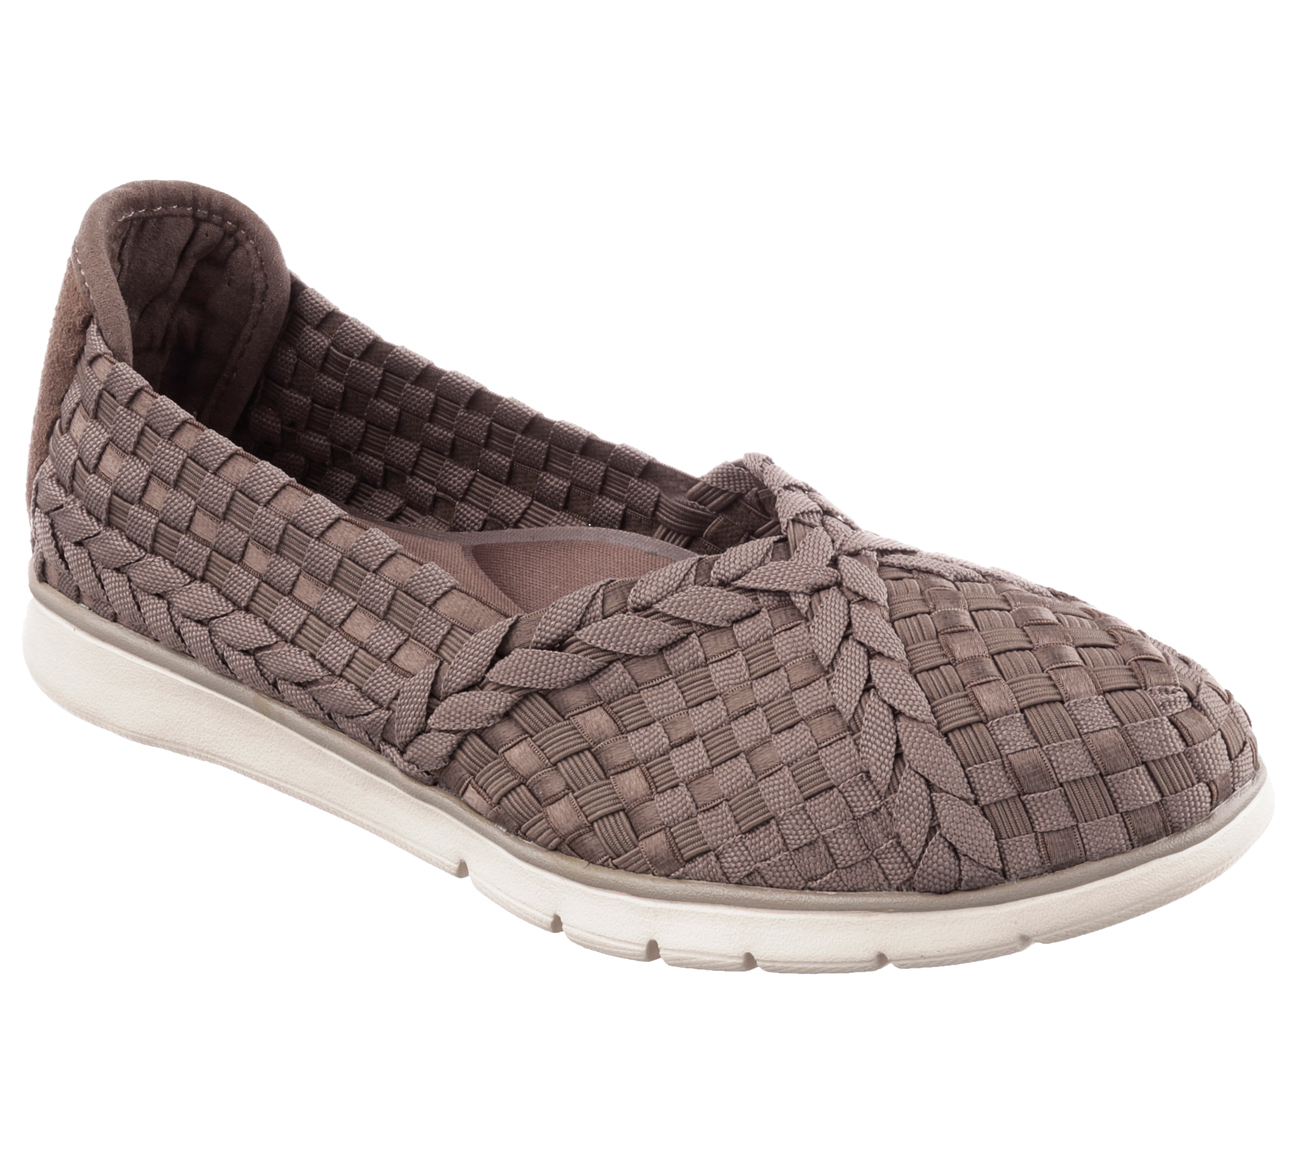 Skechers Womens Shoes Braided